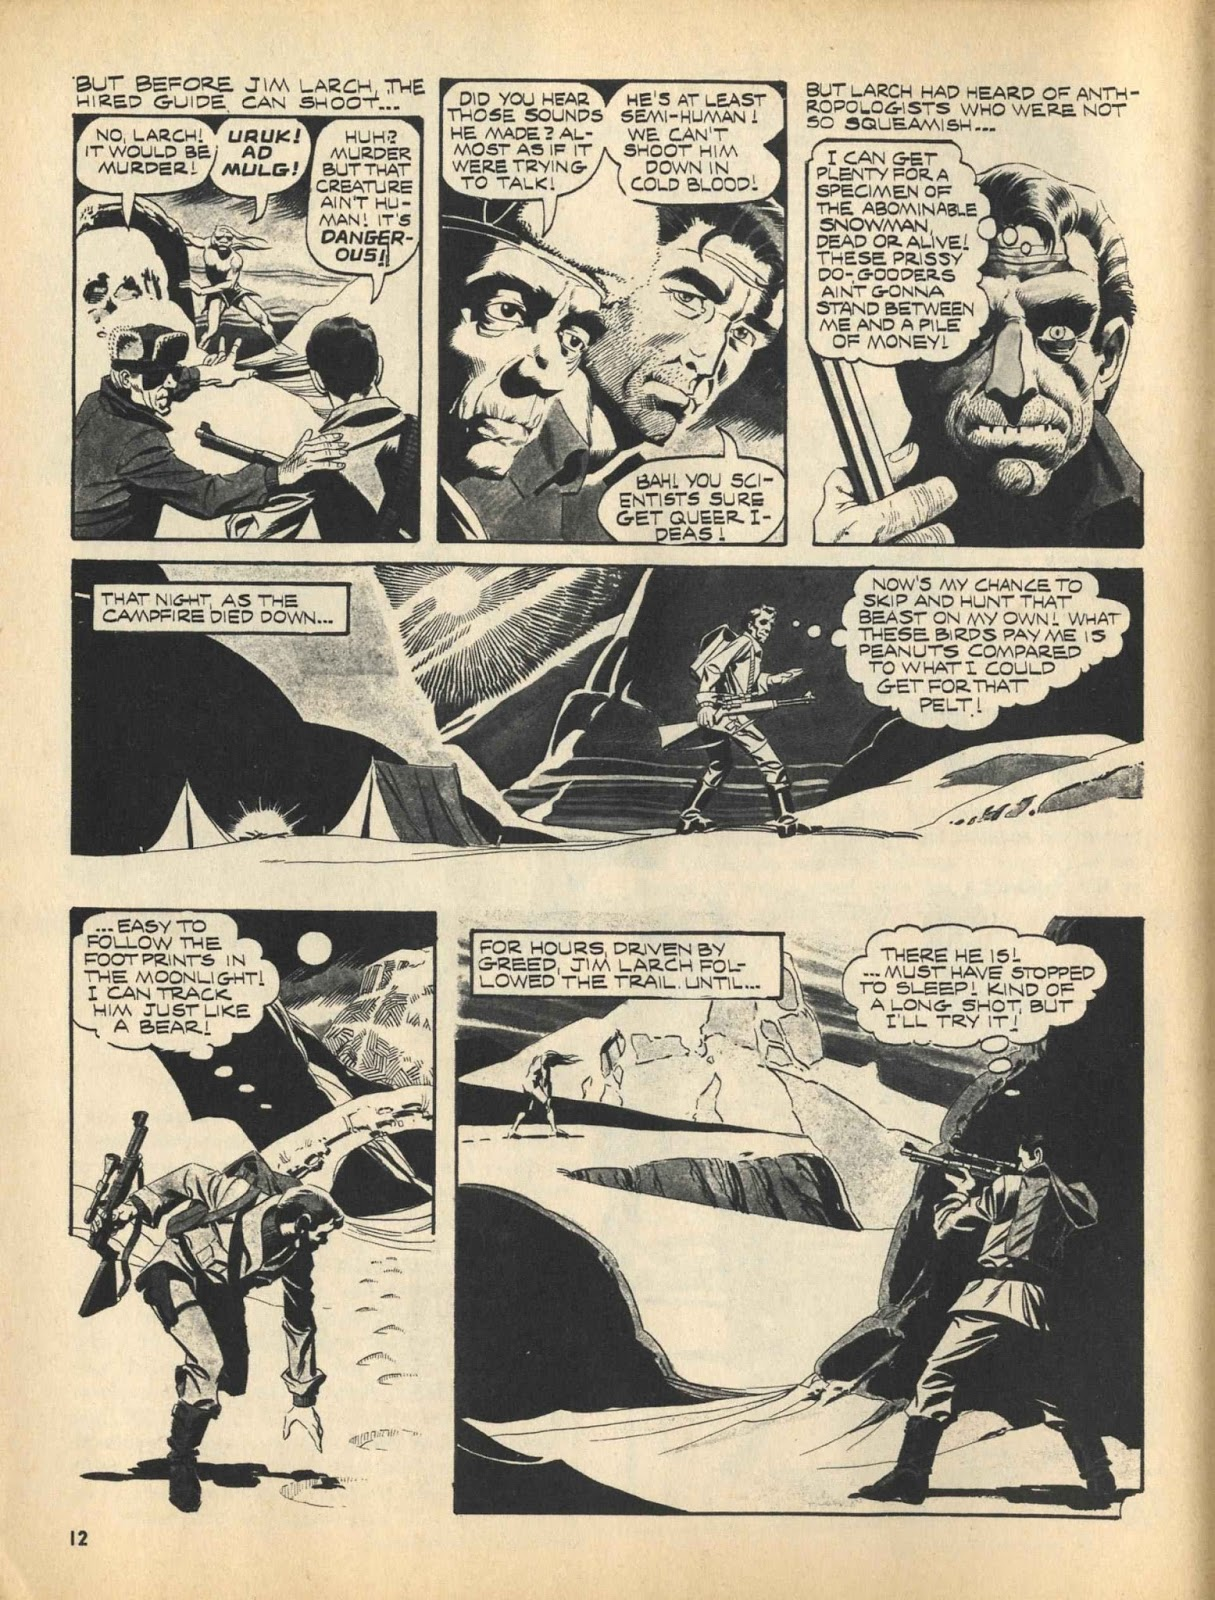 Web of Horror (1969) #3 pg12, written by Otto Binder with art from Ralph Reese.